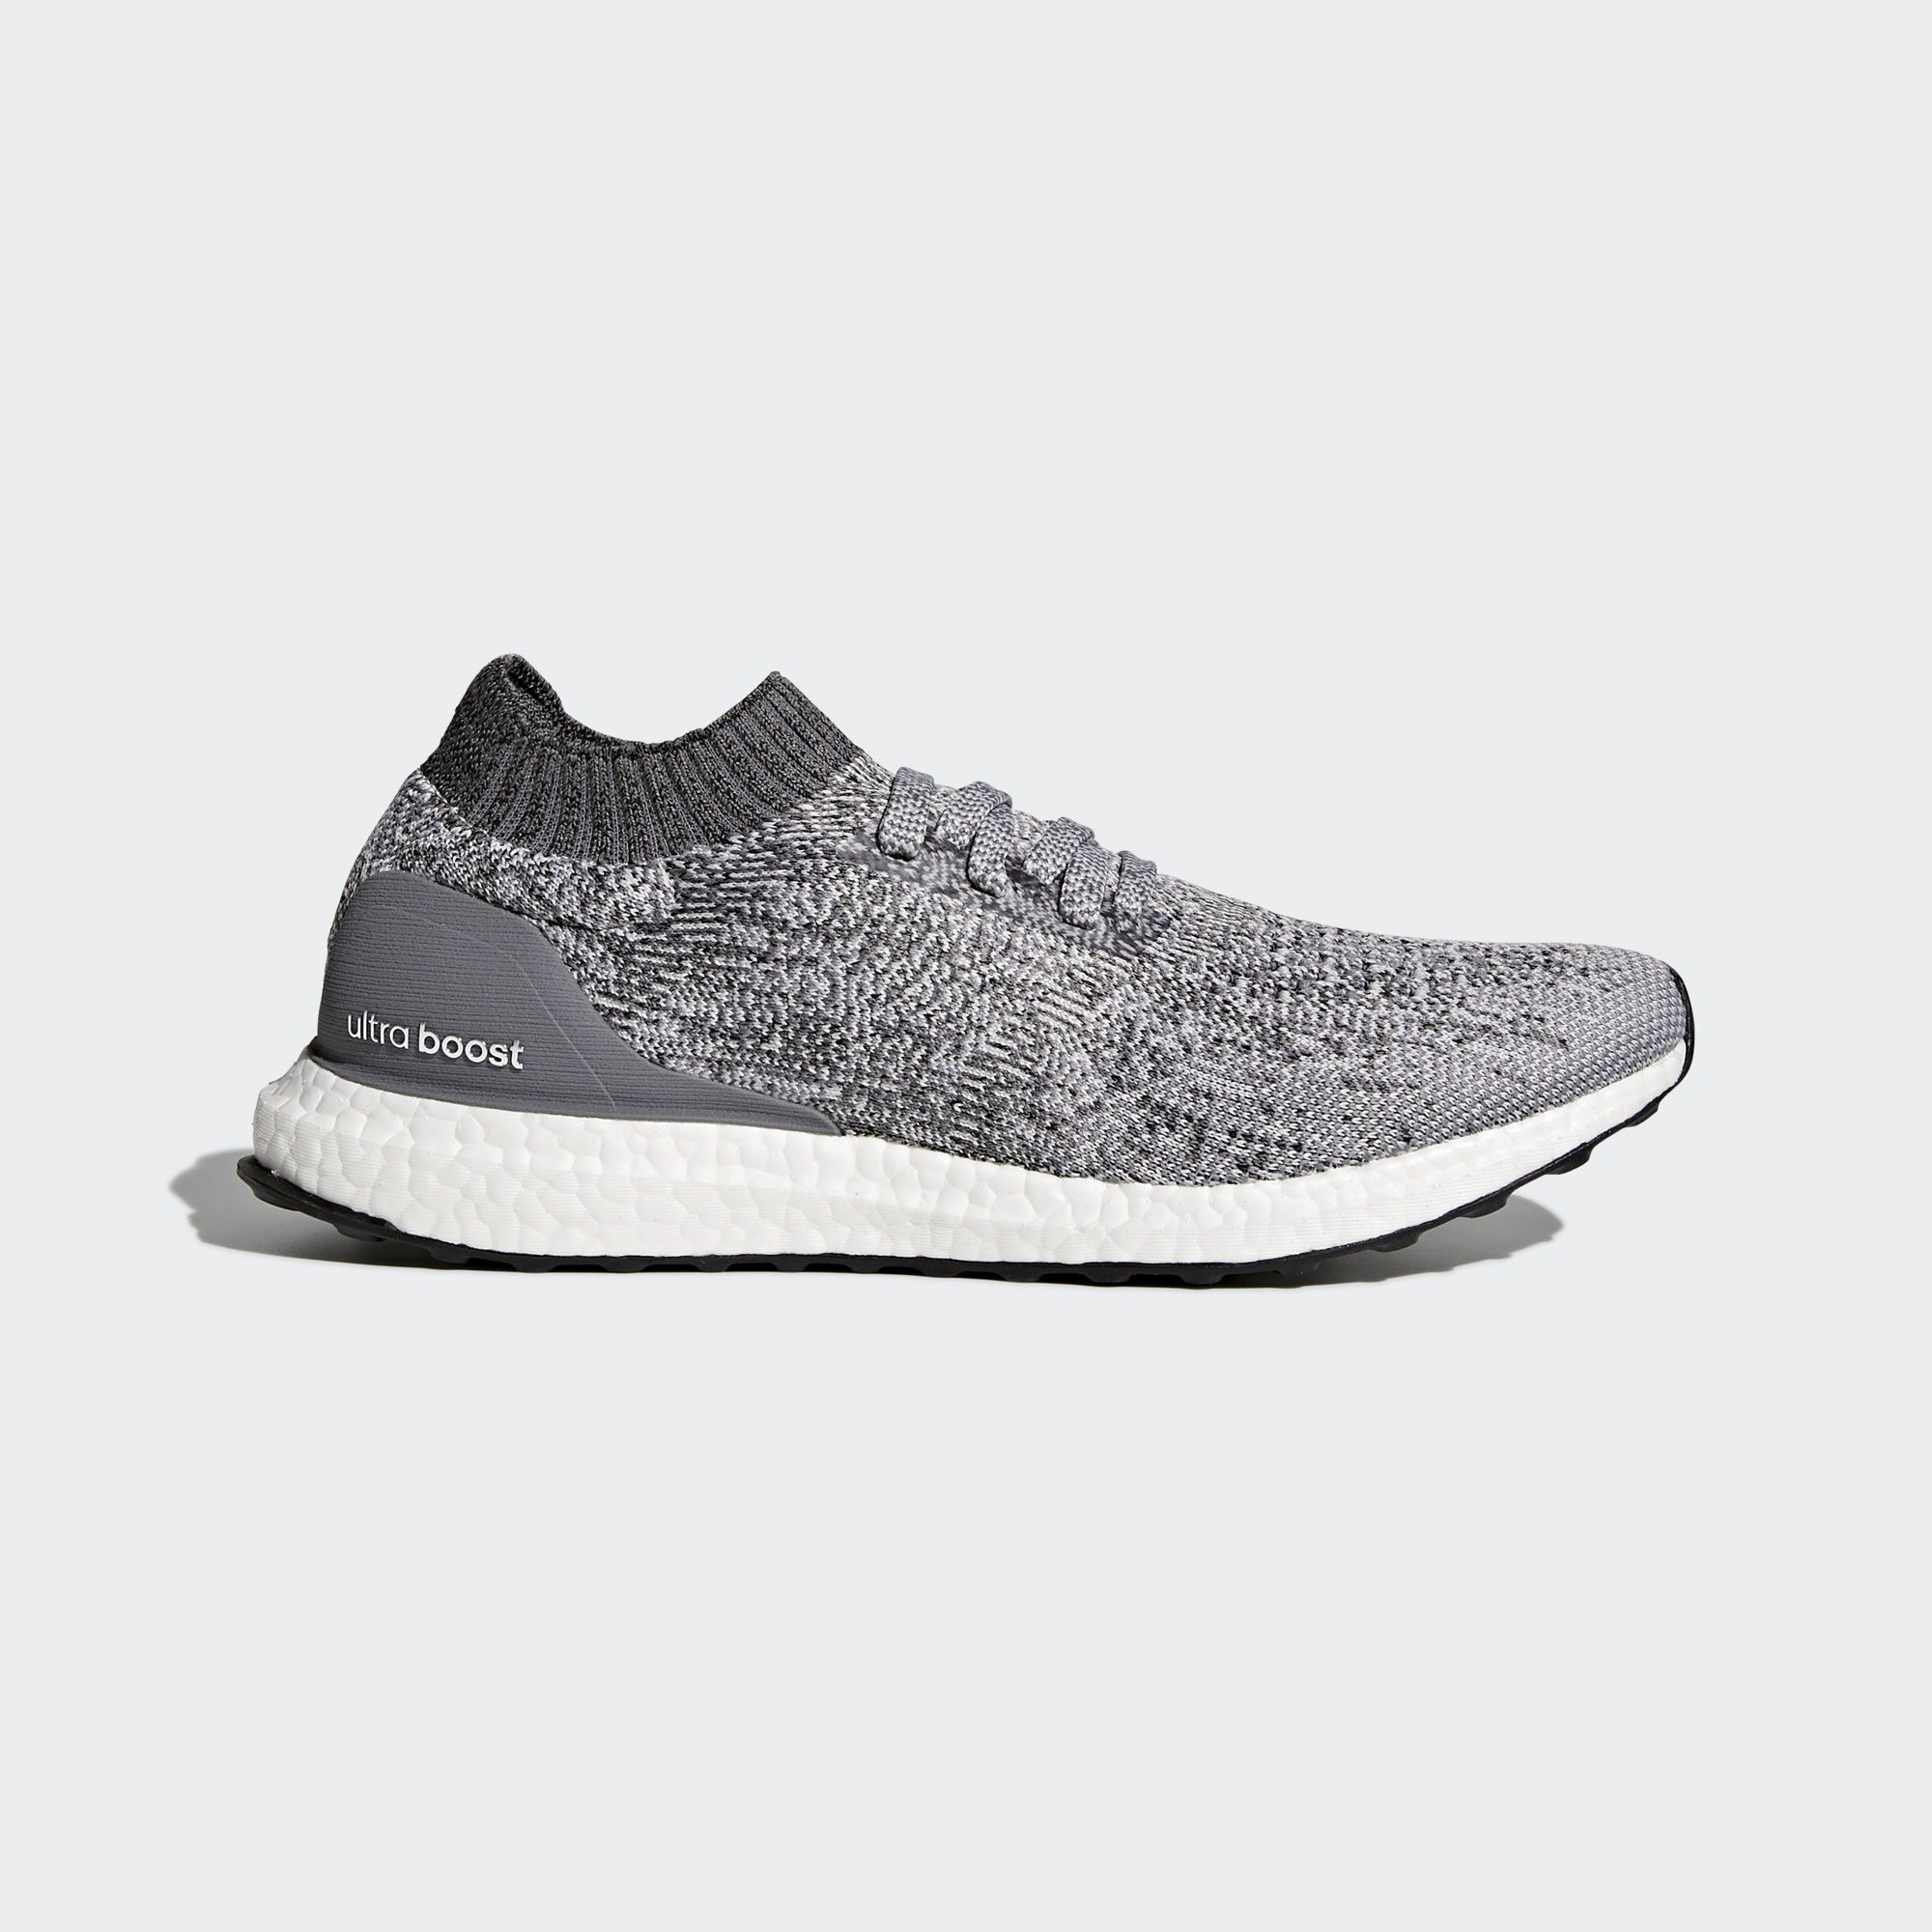 get cheap 9b162 c6e16 Shop the Ultraboost Uncaged Shoes - Grey at adidas.com us! See all the  styles and colors of Ultraboost Uncaged Shoes - Grey at the official adidas  online ...